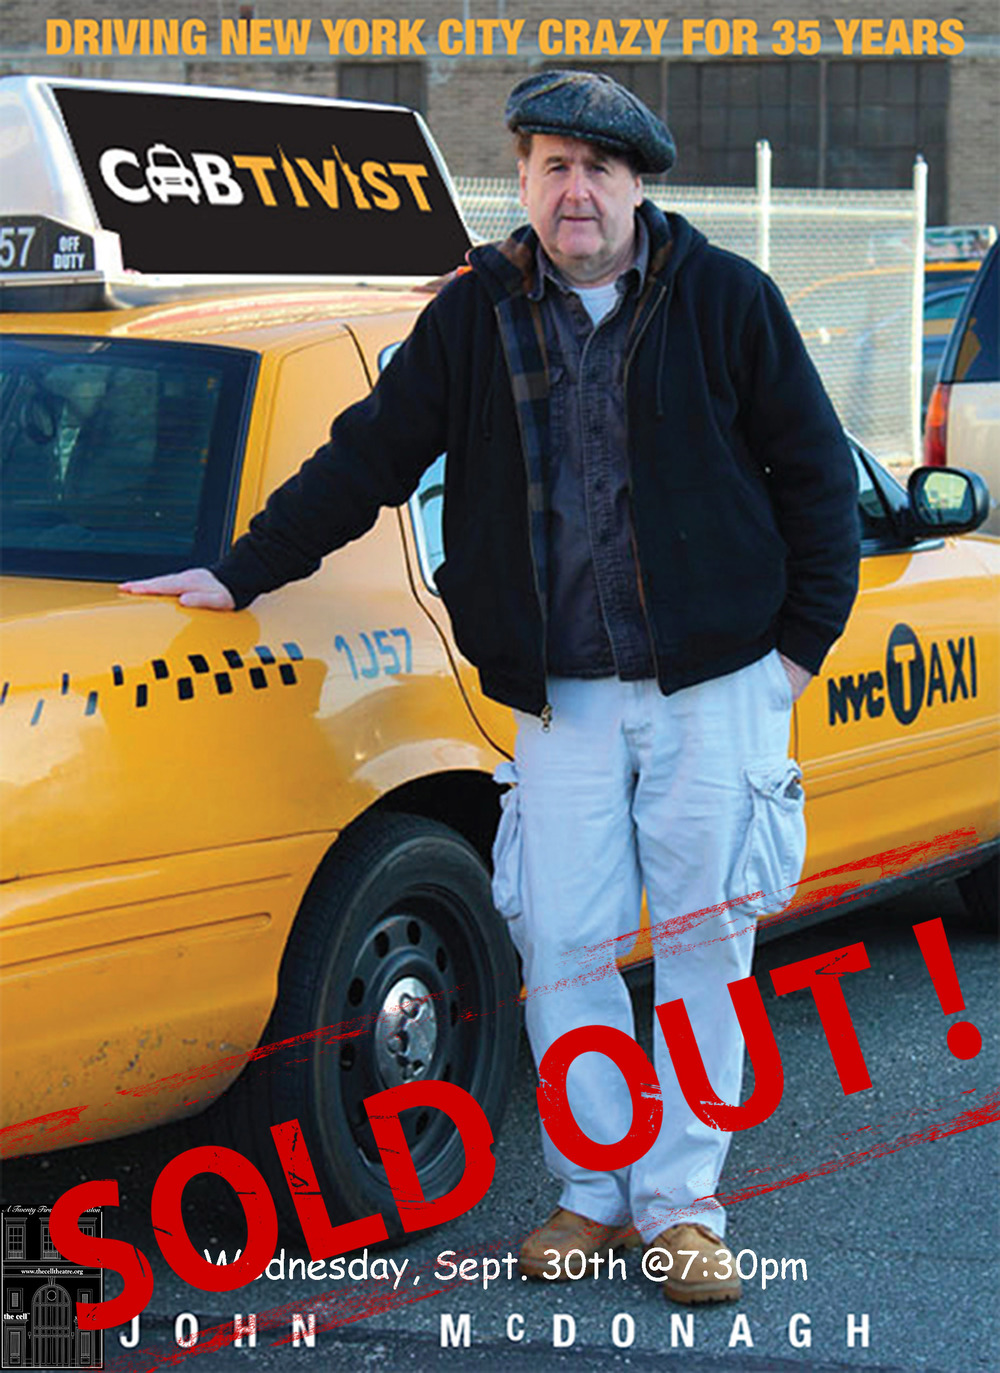 CABTIVIST written and performed by John McDonagh, veteran cabdriver and activist. These New York City stories are a hilarious, heartbreaking, and honest tour de force.